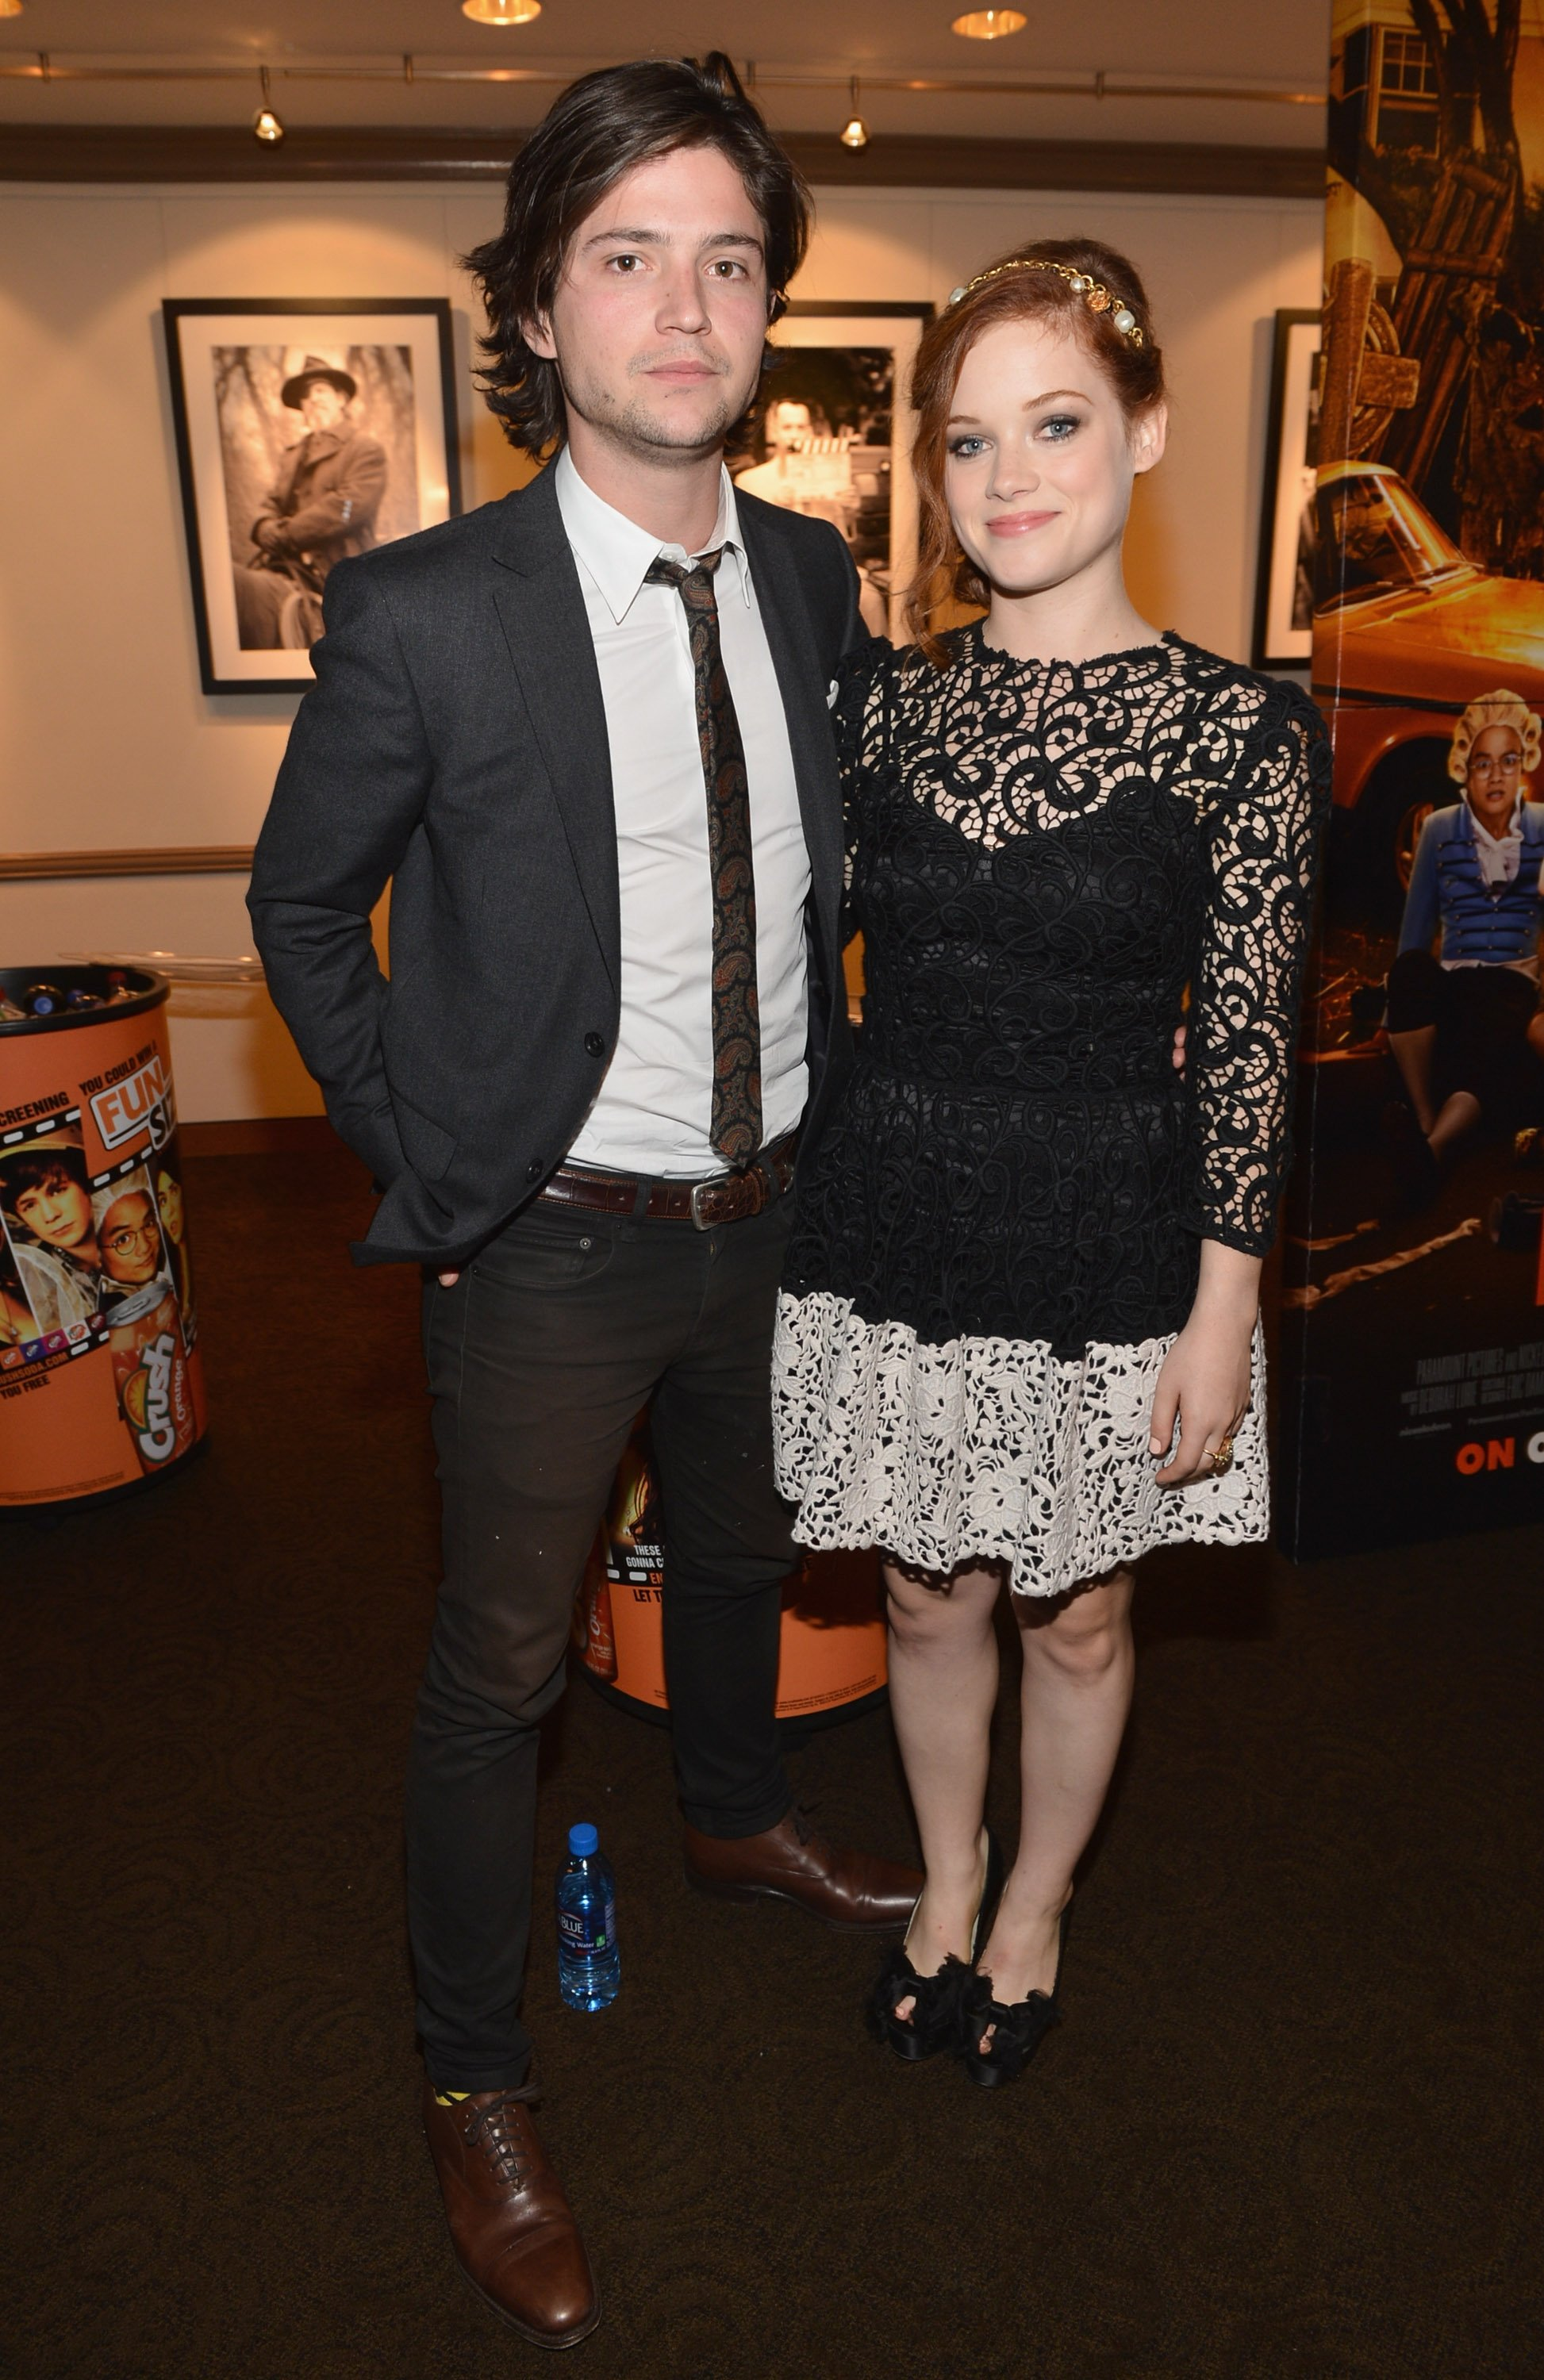 """Thomas McDonell and Jane Levy arrive to the premiere of Paramount Pictures' """"Fun Size"""" at Paramount Theater on the Paramount Studios lot on October 25, 2012 in Hollywood, California   Photo: Getty Images"""